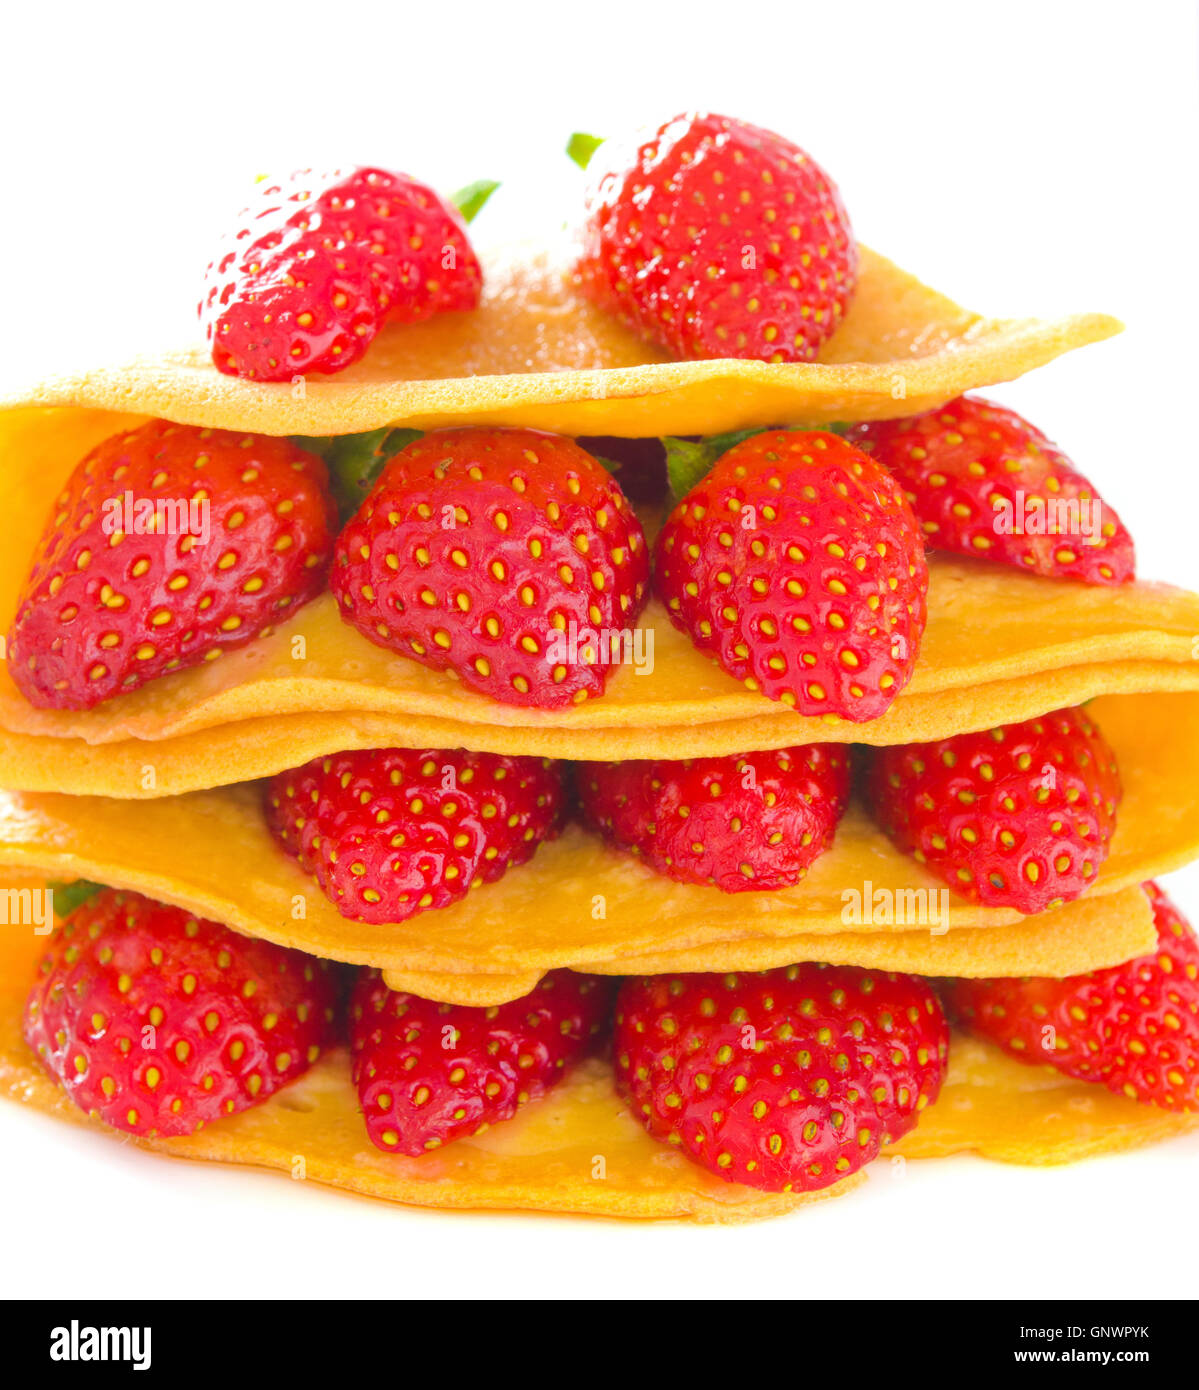 Pancakes and strawberry with syrup - Stock Image